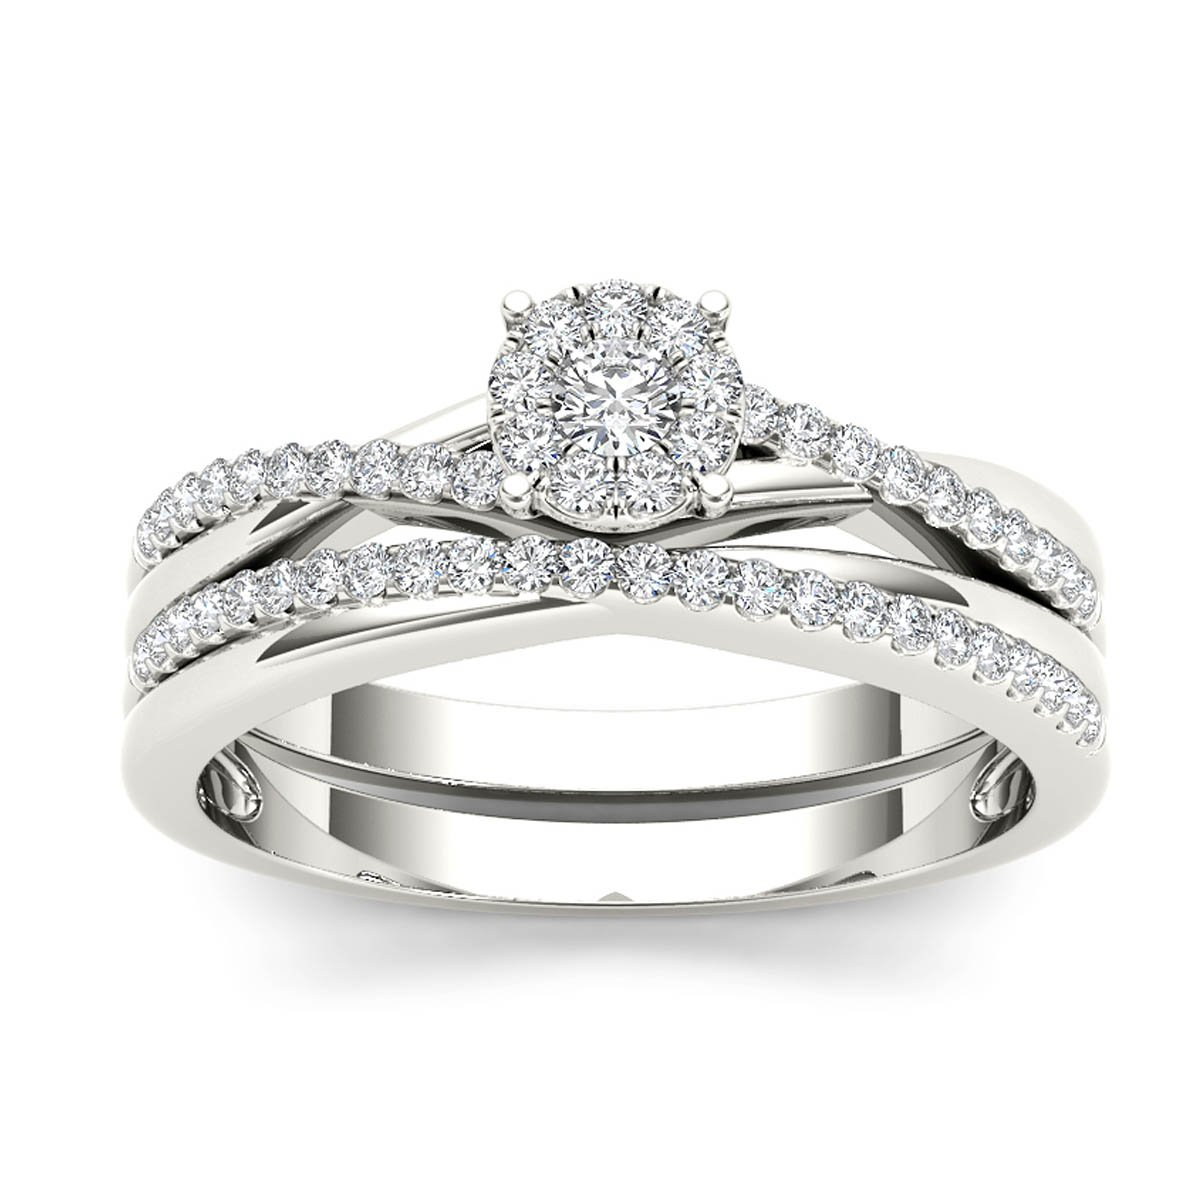 Fine Rings Jewelry & Watches Smart Engagement Diamond Ring Band Set 4 Prong Princess Cut Certified 18k White Gold